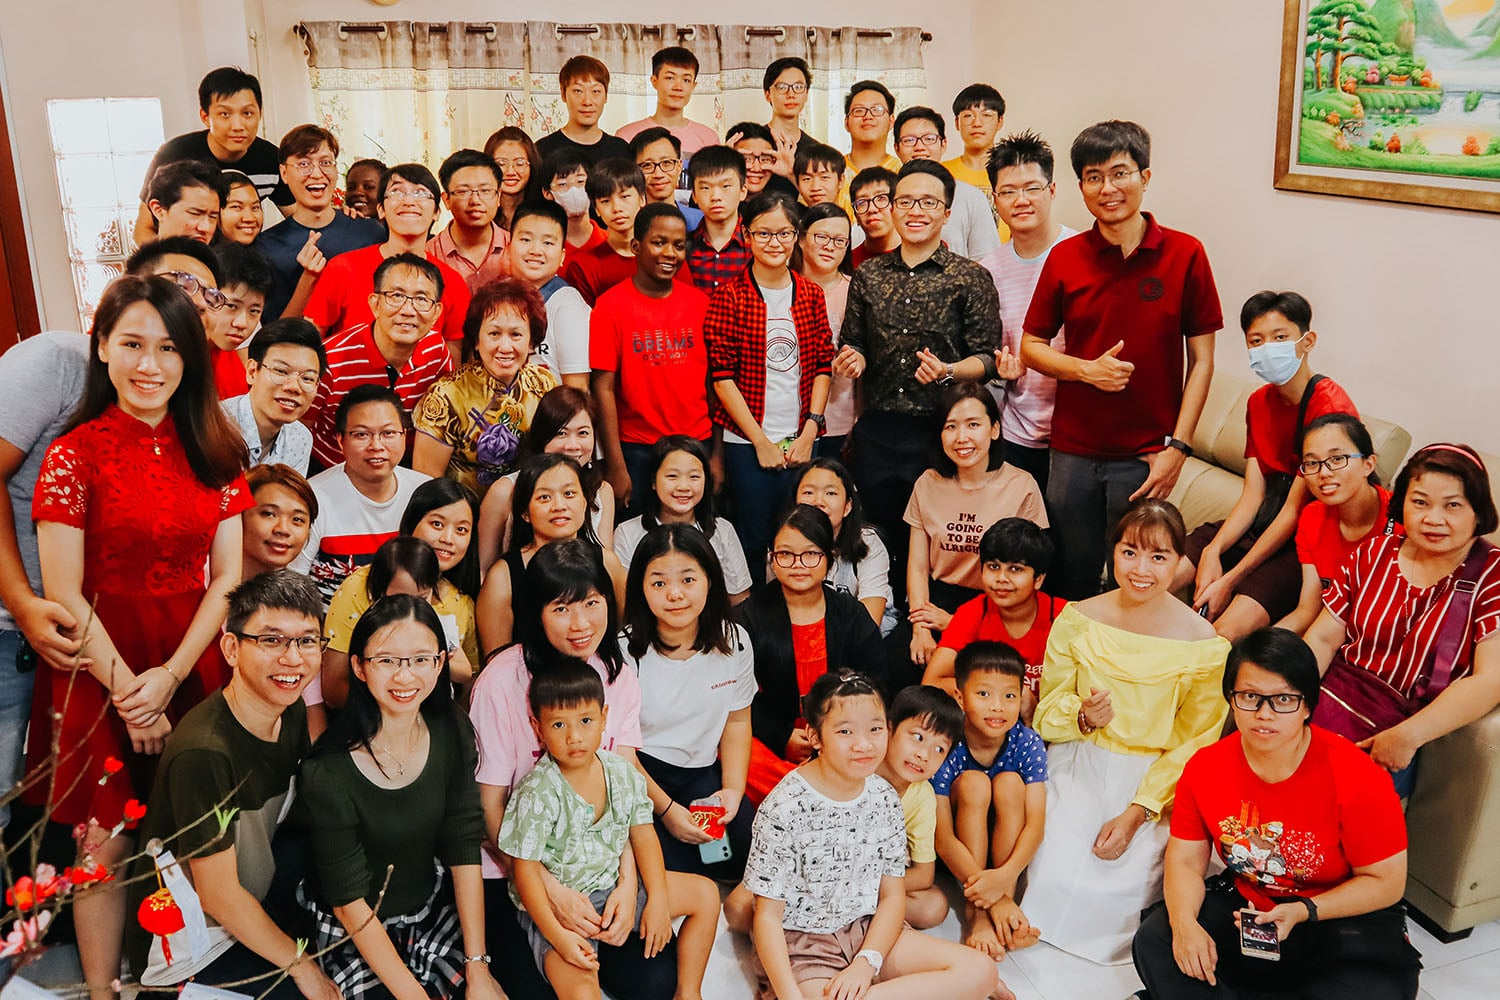 KLBC Youths Lunar New Year Visitation